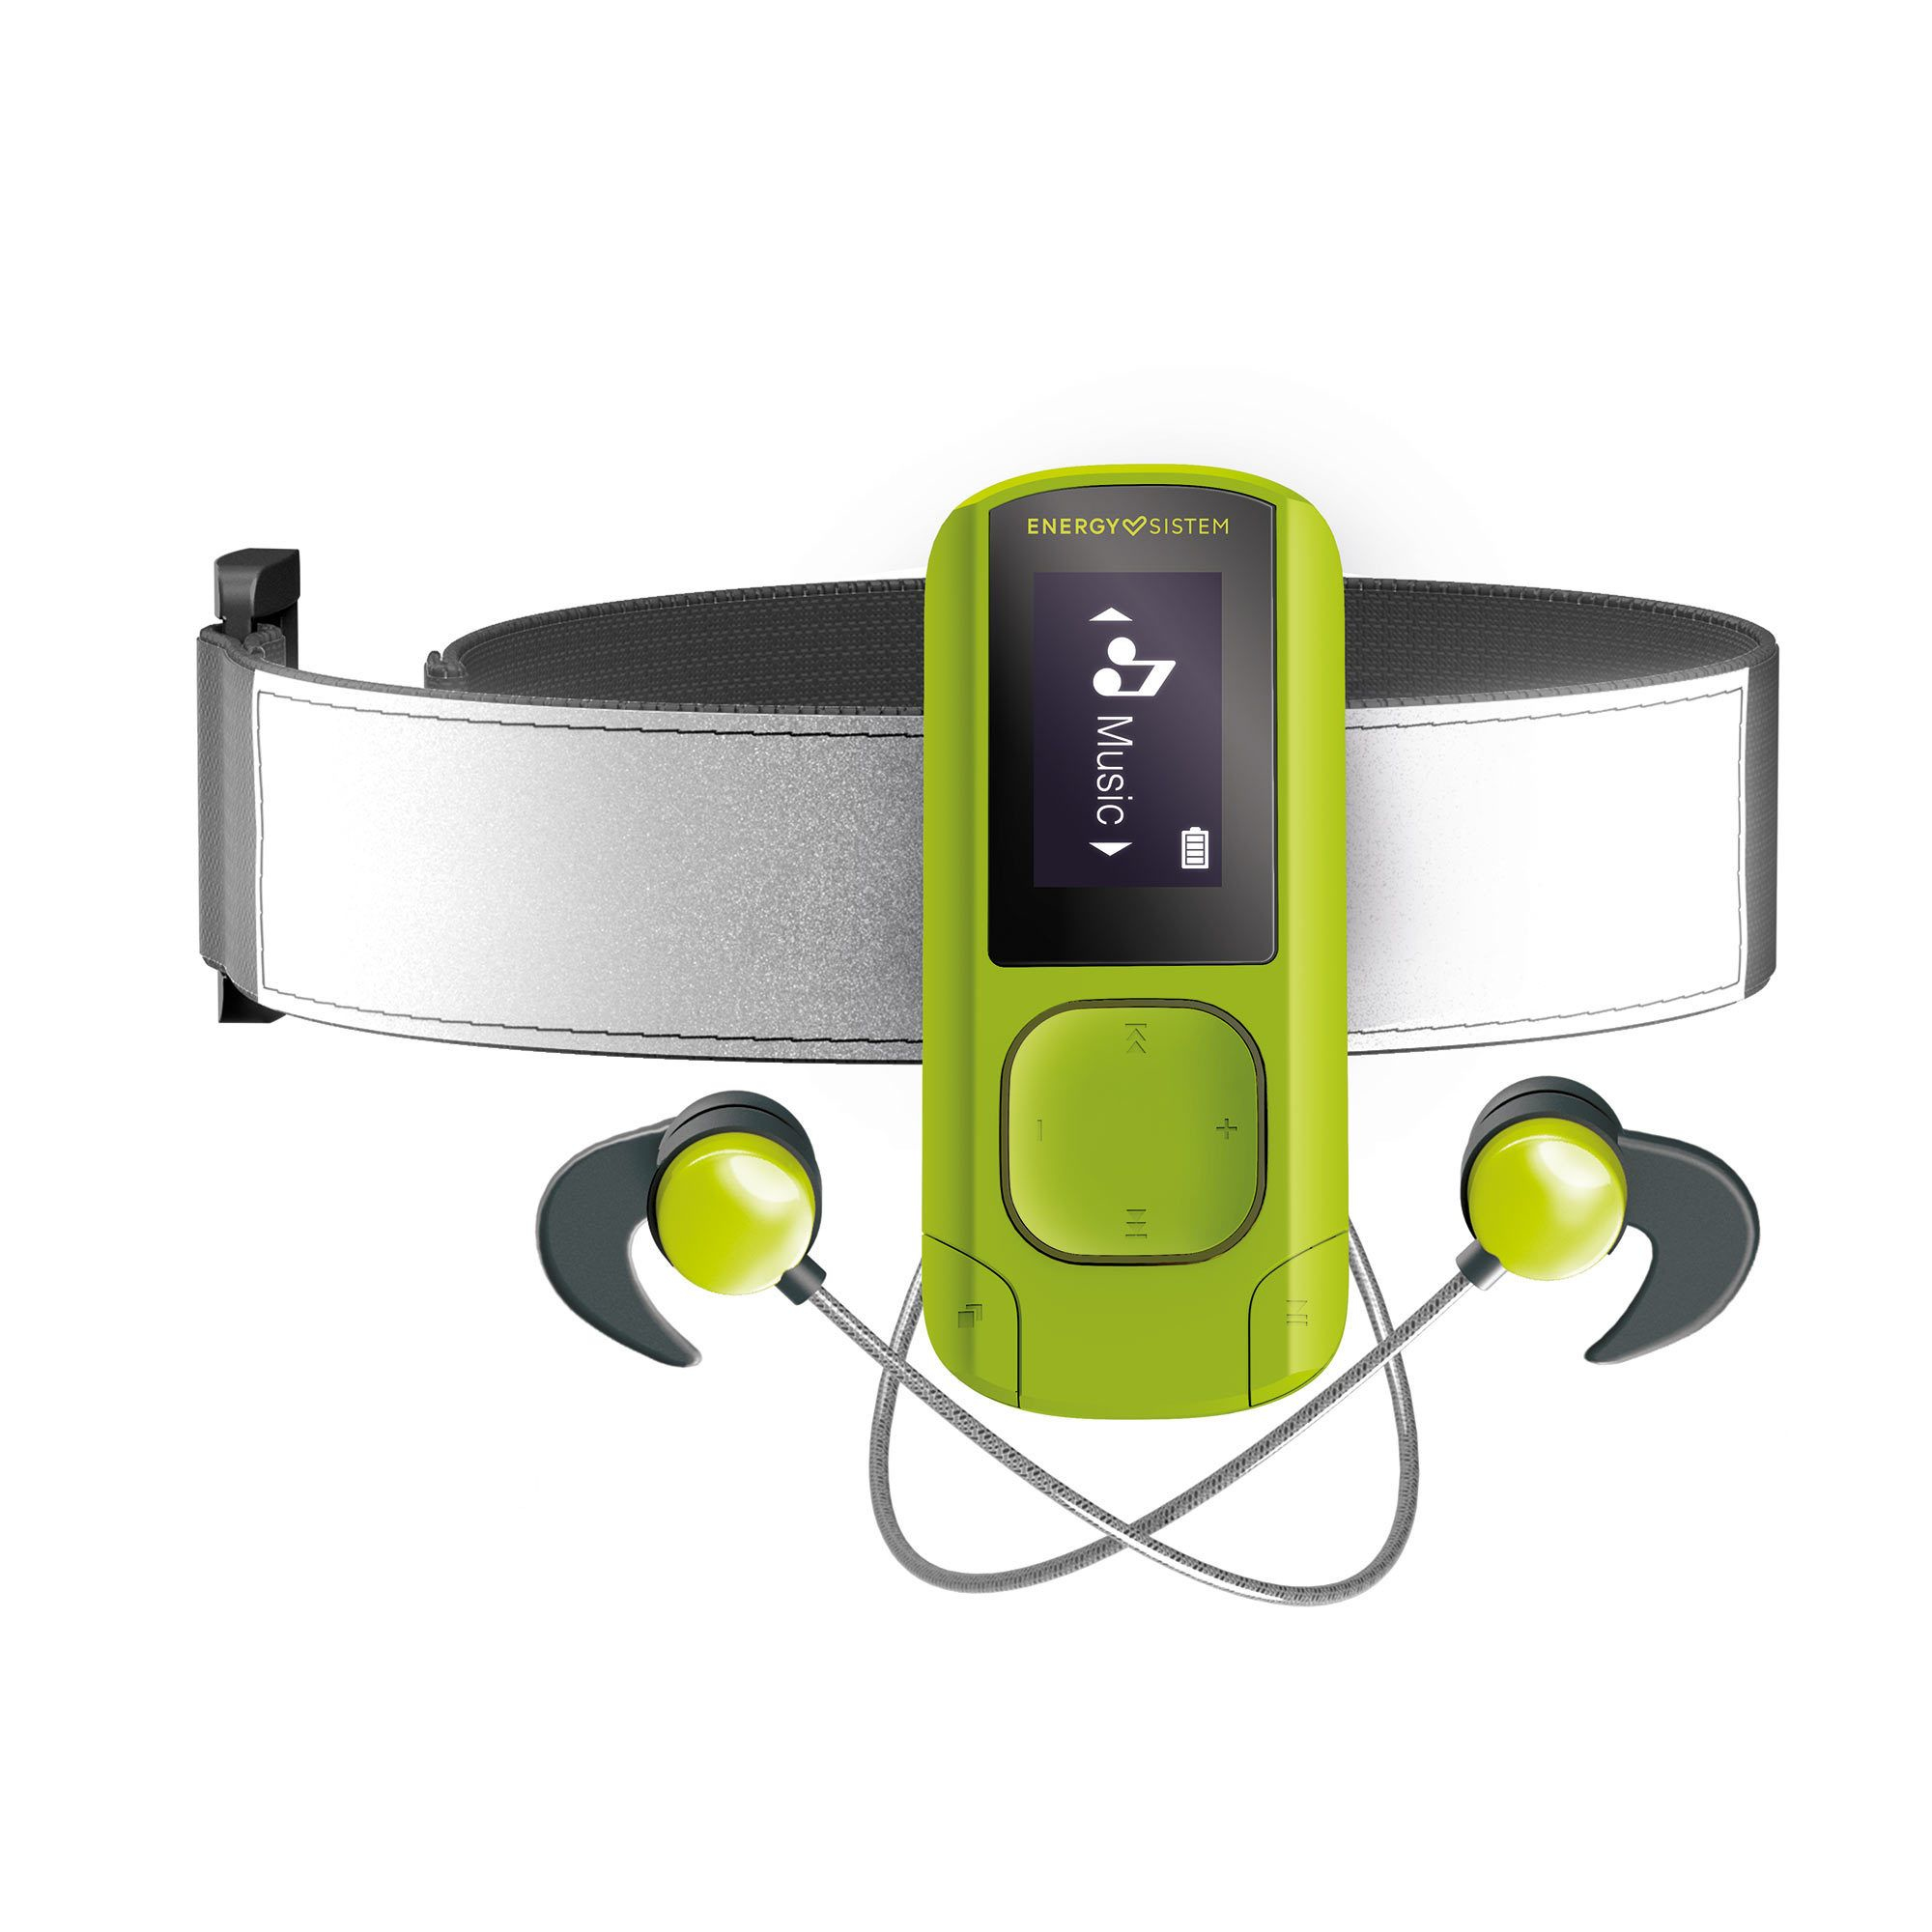 Energy Sistem MP3 Clip BT Sport Greenstone Reproductor de MP3 Verde 16 GB